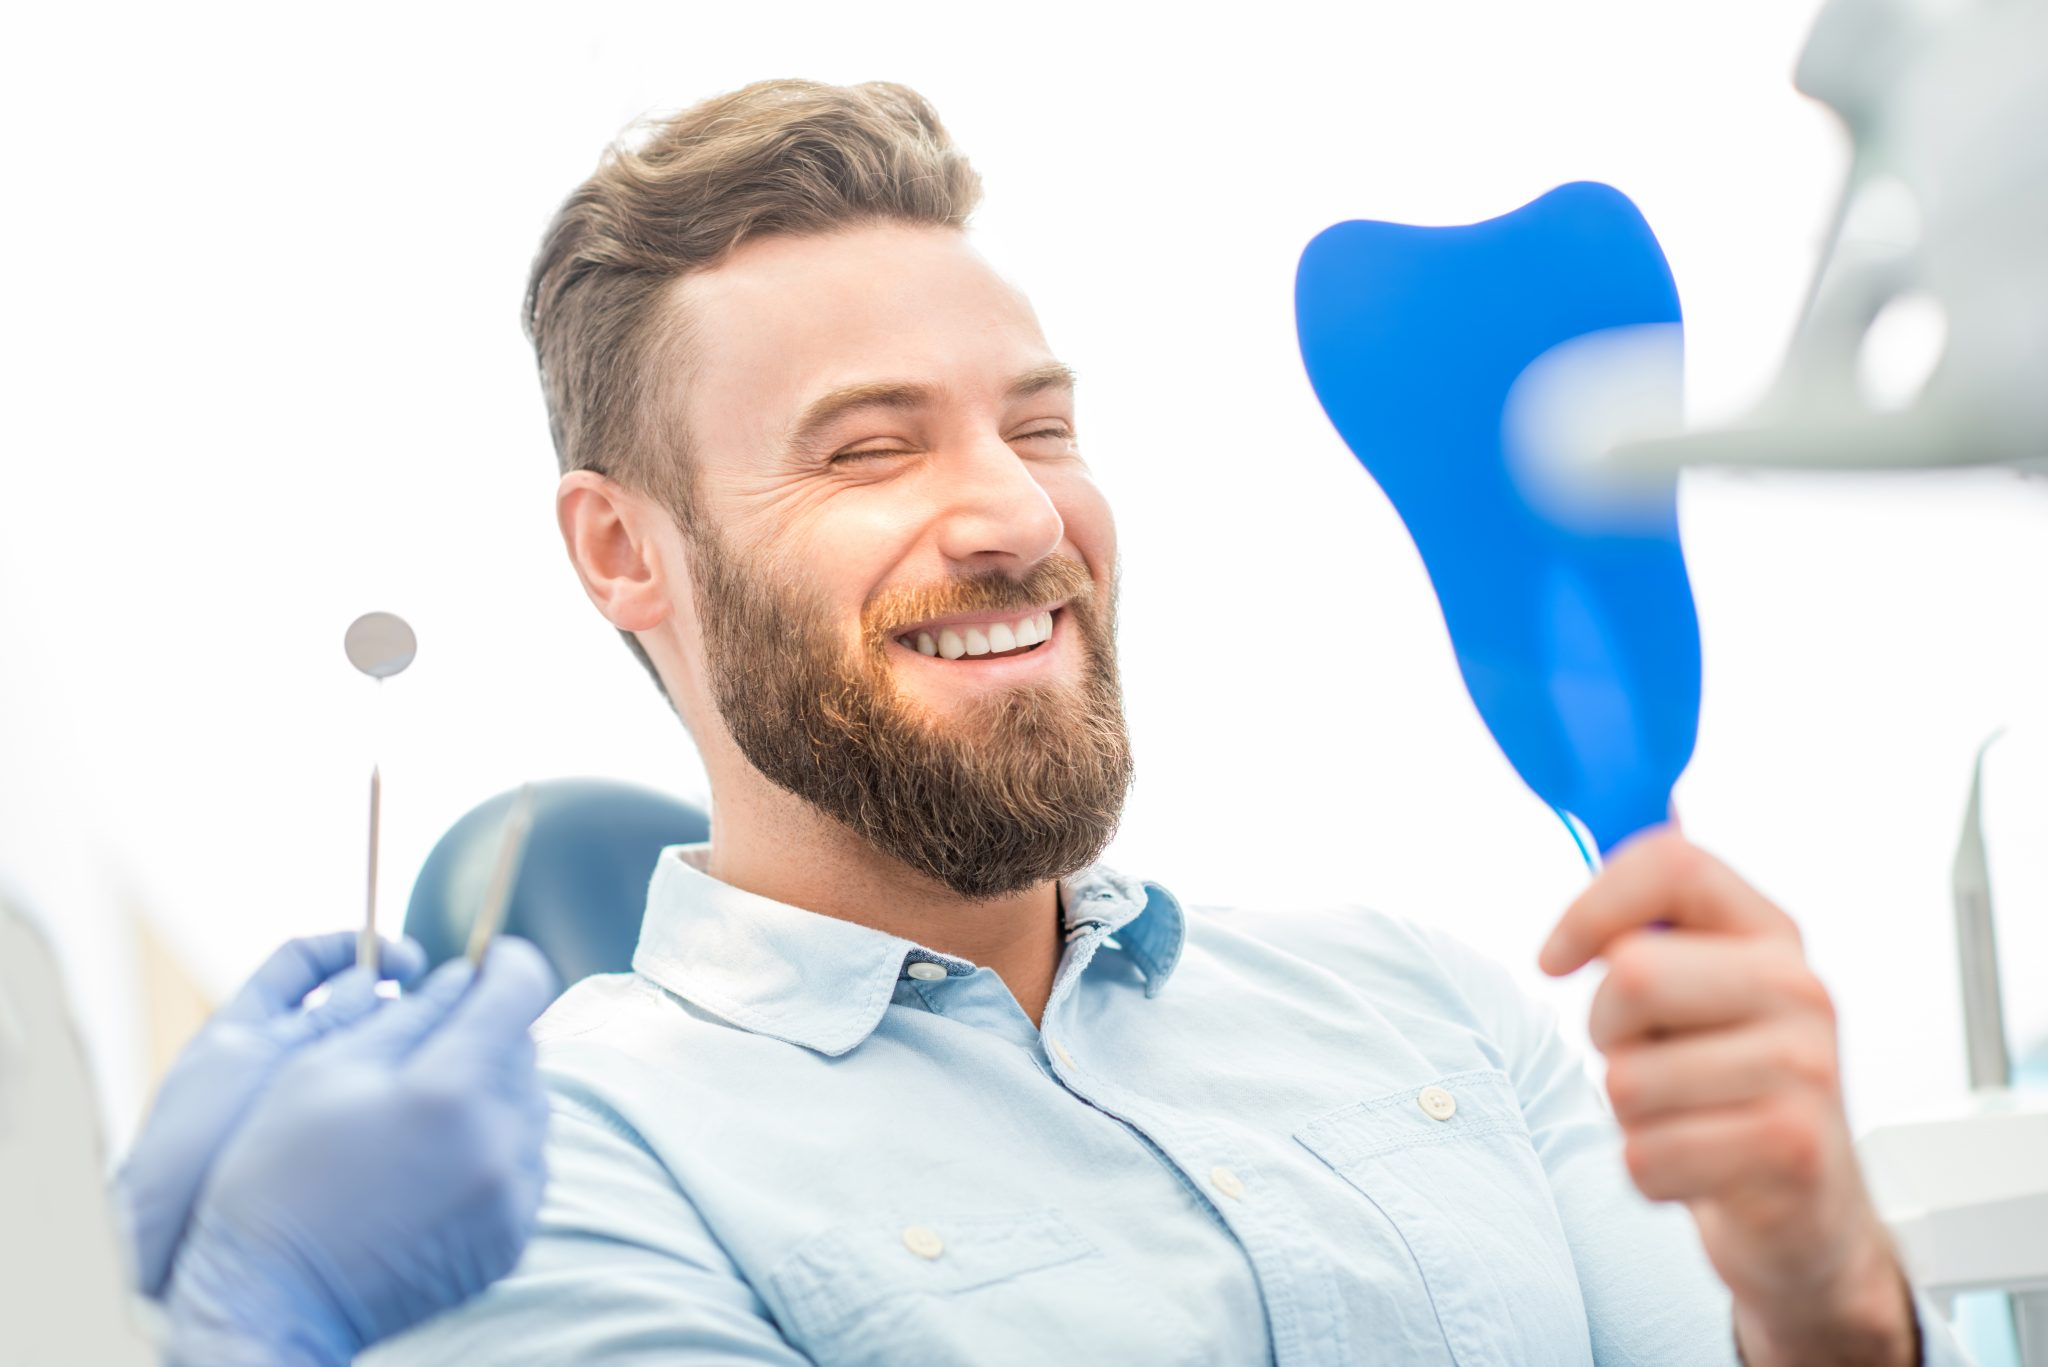 Man With Great Smile At The Dental Office